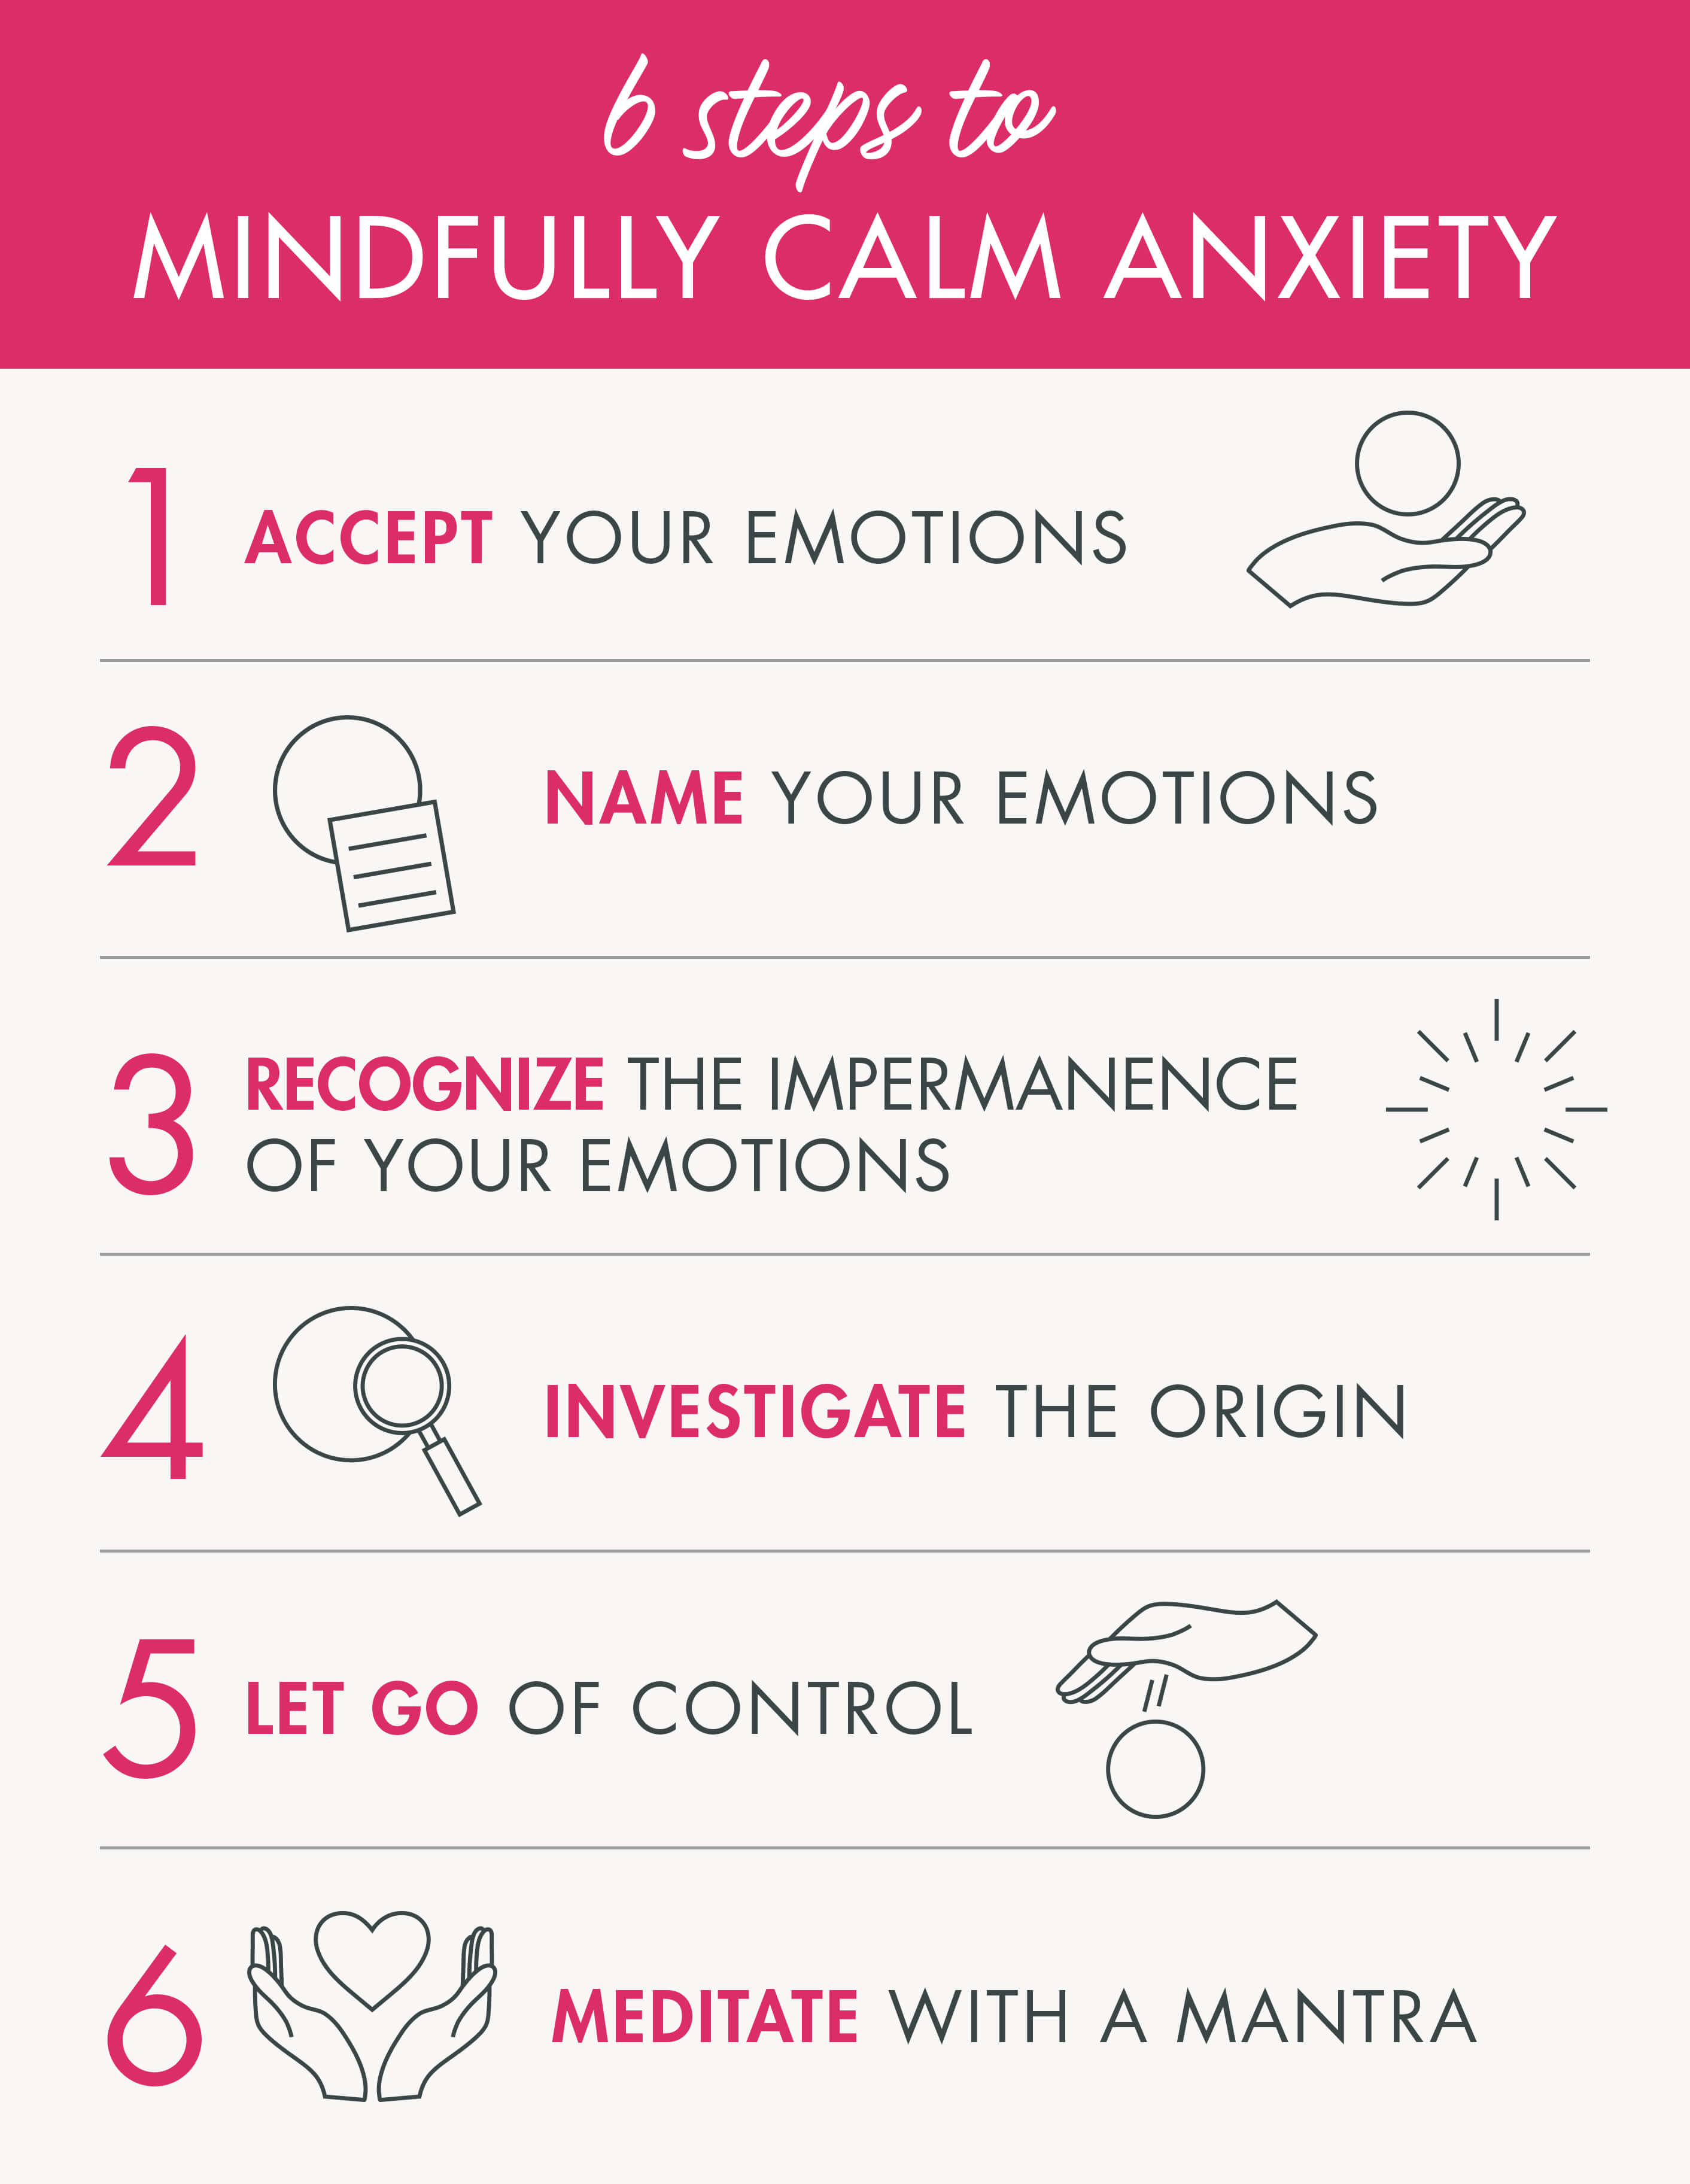 6 Ways to Mindfully Control Anxiety: 1 - Accept your emotions. 2 - Name your emotions. 3 - Recognize the impermanence of your emotions. 4 - Investigate the origin. 5 - Let go of control. 6 - Meditate with a mantra.